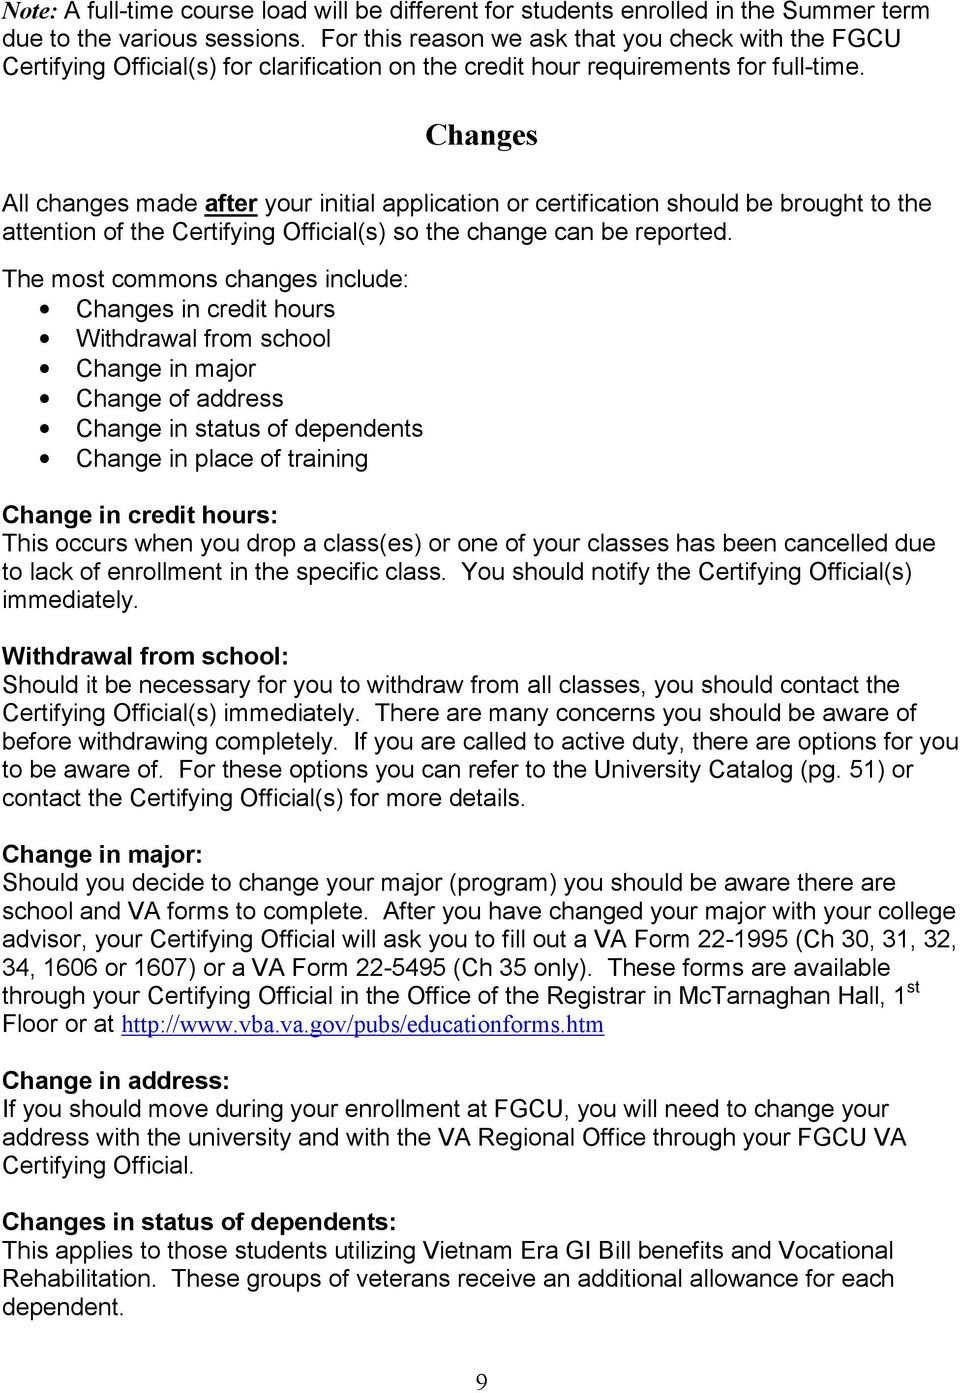 Changes All changes made after your initial application or certification should be brought to the attention of the Certifying Official(s) so the change can be reported.